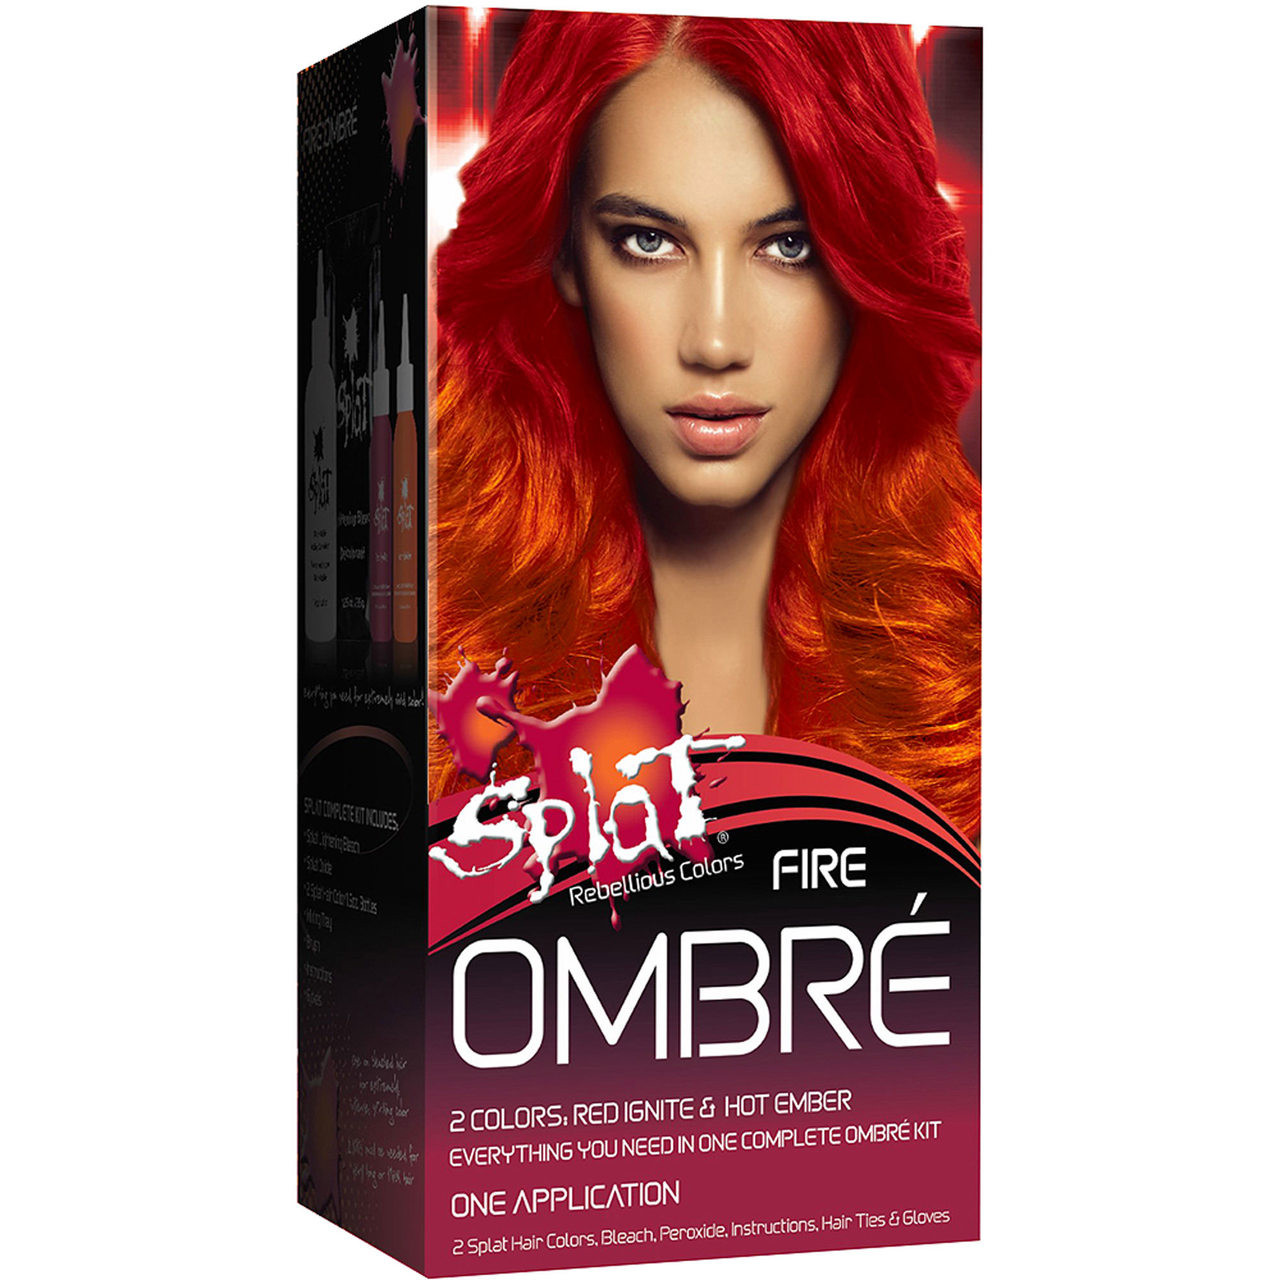 Splat Rebellious Colors Semi Permanent Hair Dye Fire Ombre Btybox